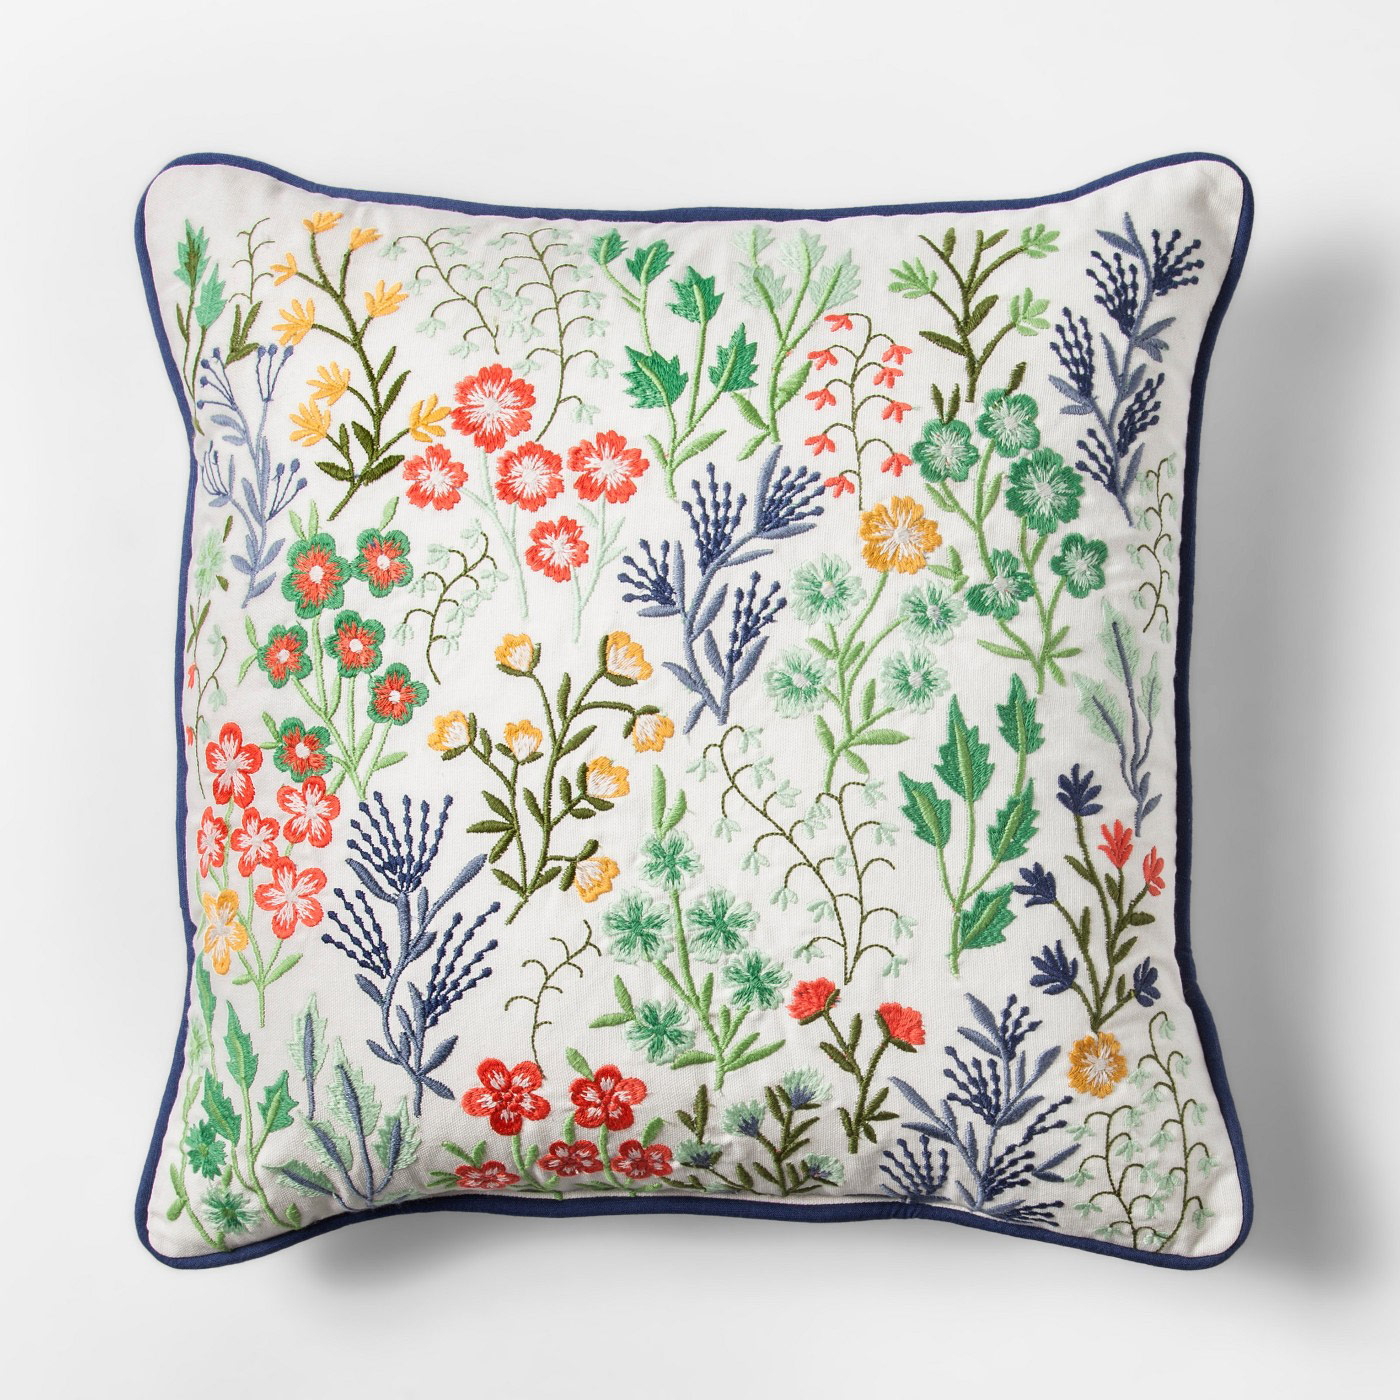 Blue Floral Embroidered Square Throw Pillow